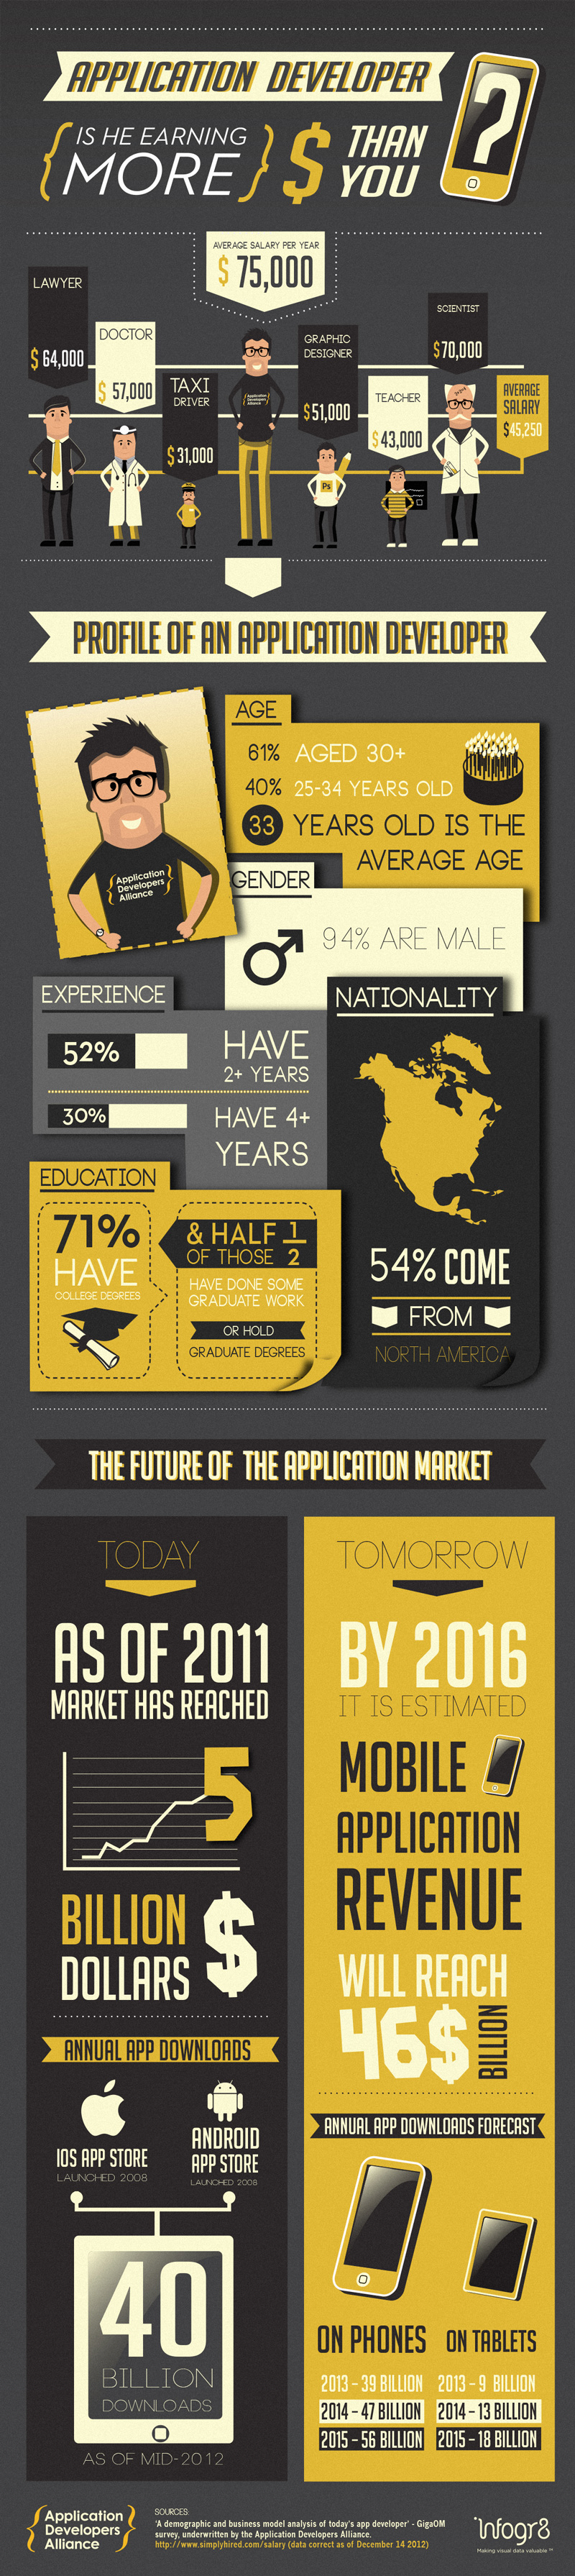 is-an-application-developer-earning-more-than-you_50ed8c6bbeed1